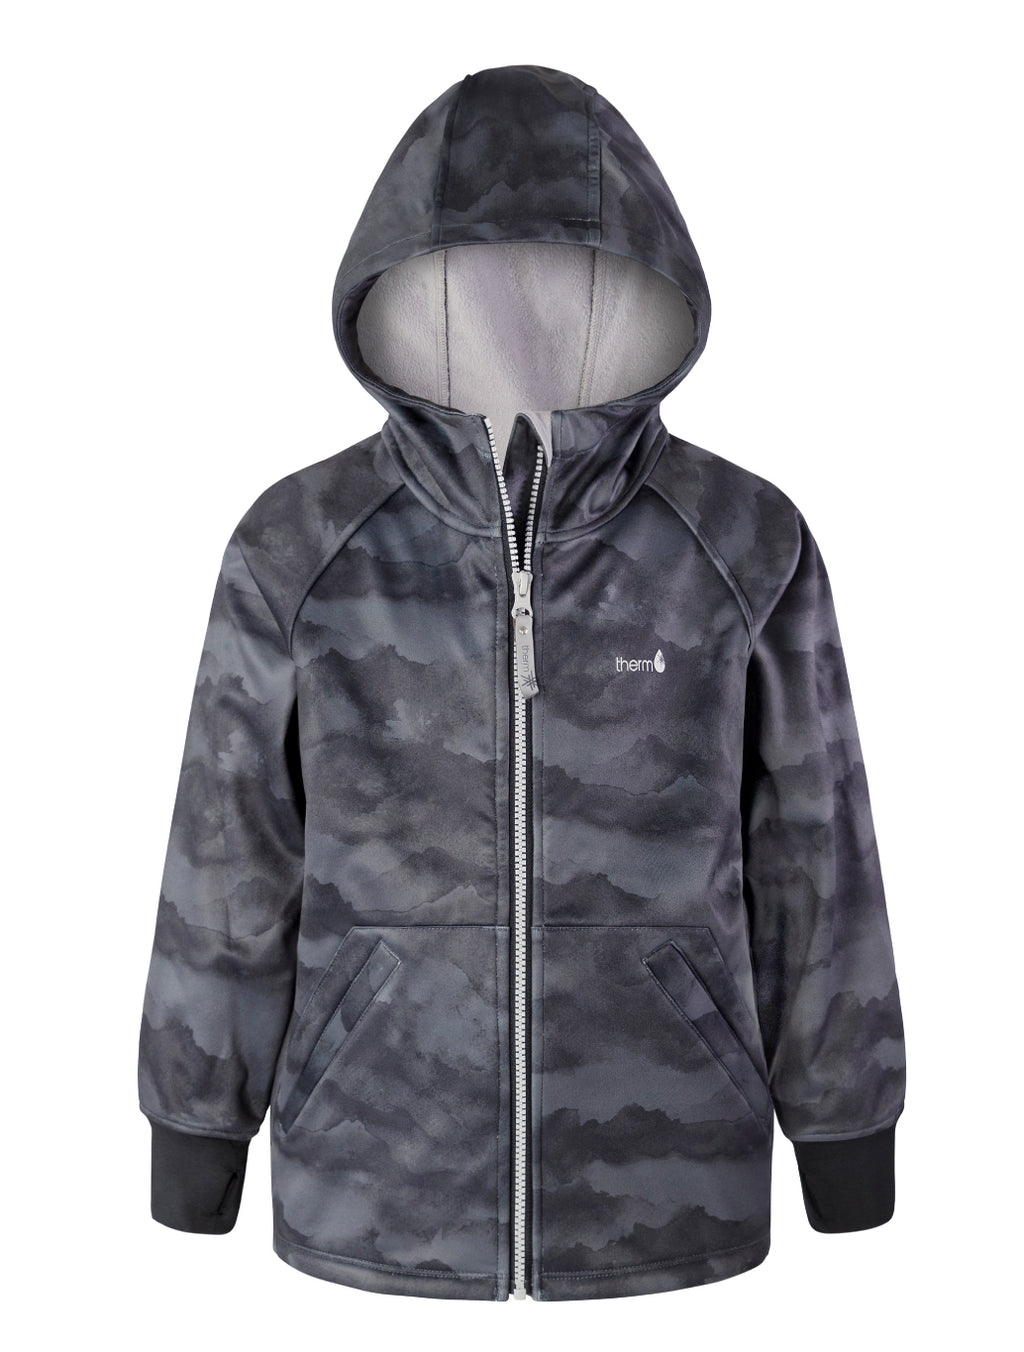 THERM All-Weather Hoodie - Black Mountain | Waterproof Windproof Eco